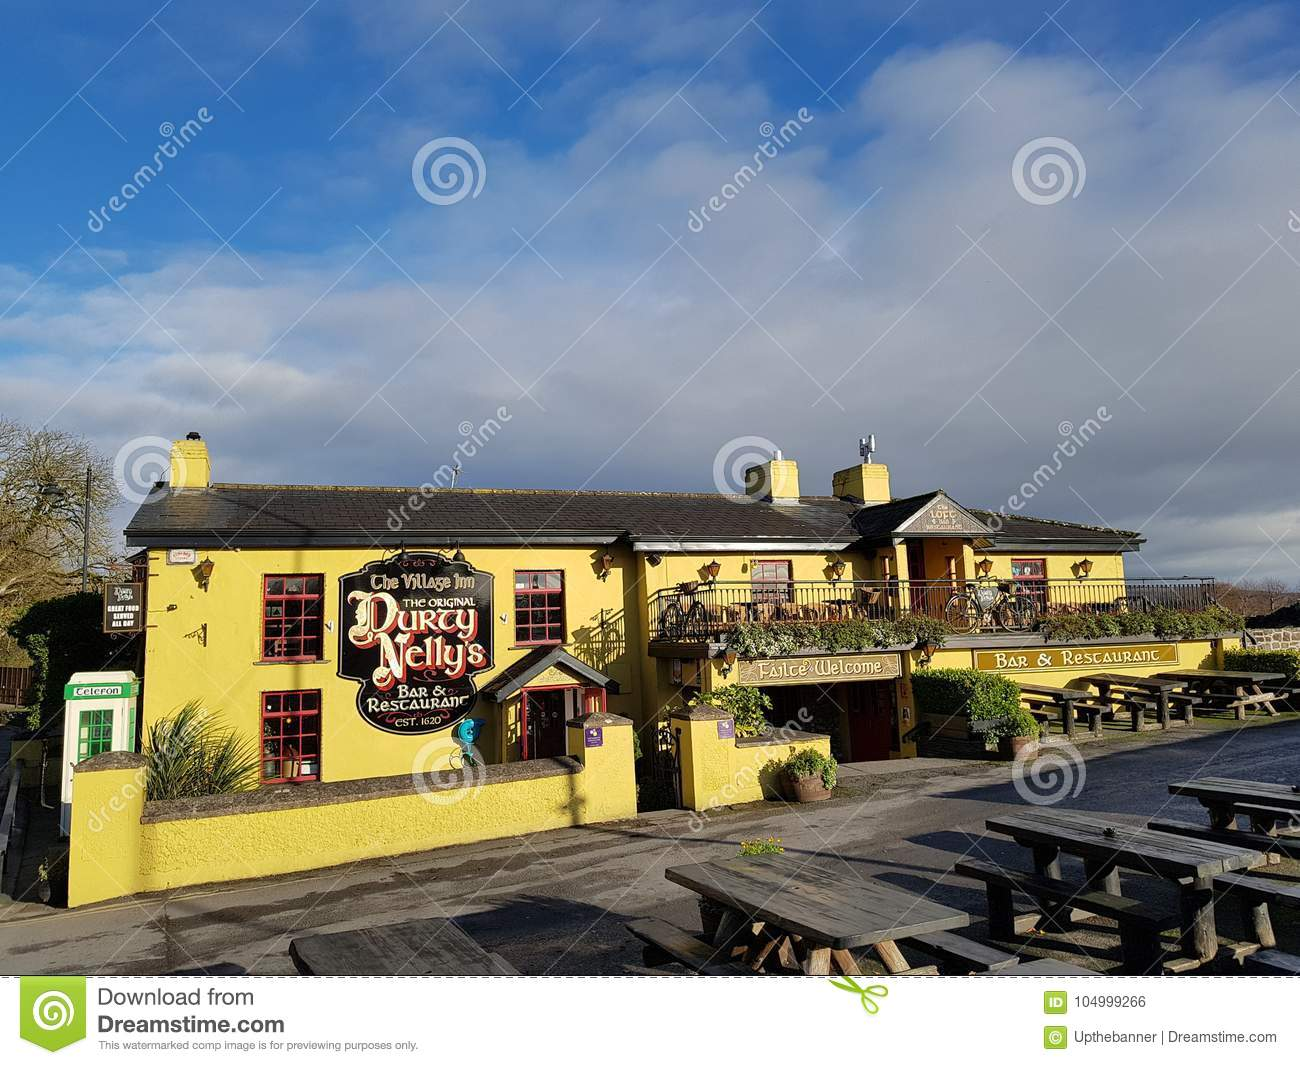 Ireland - Nov 30th 2017: Beautiful view of Ireland`s most famous Castle and Irish Pub in County Clare.